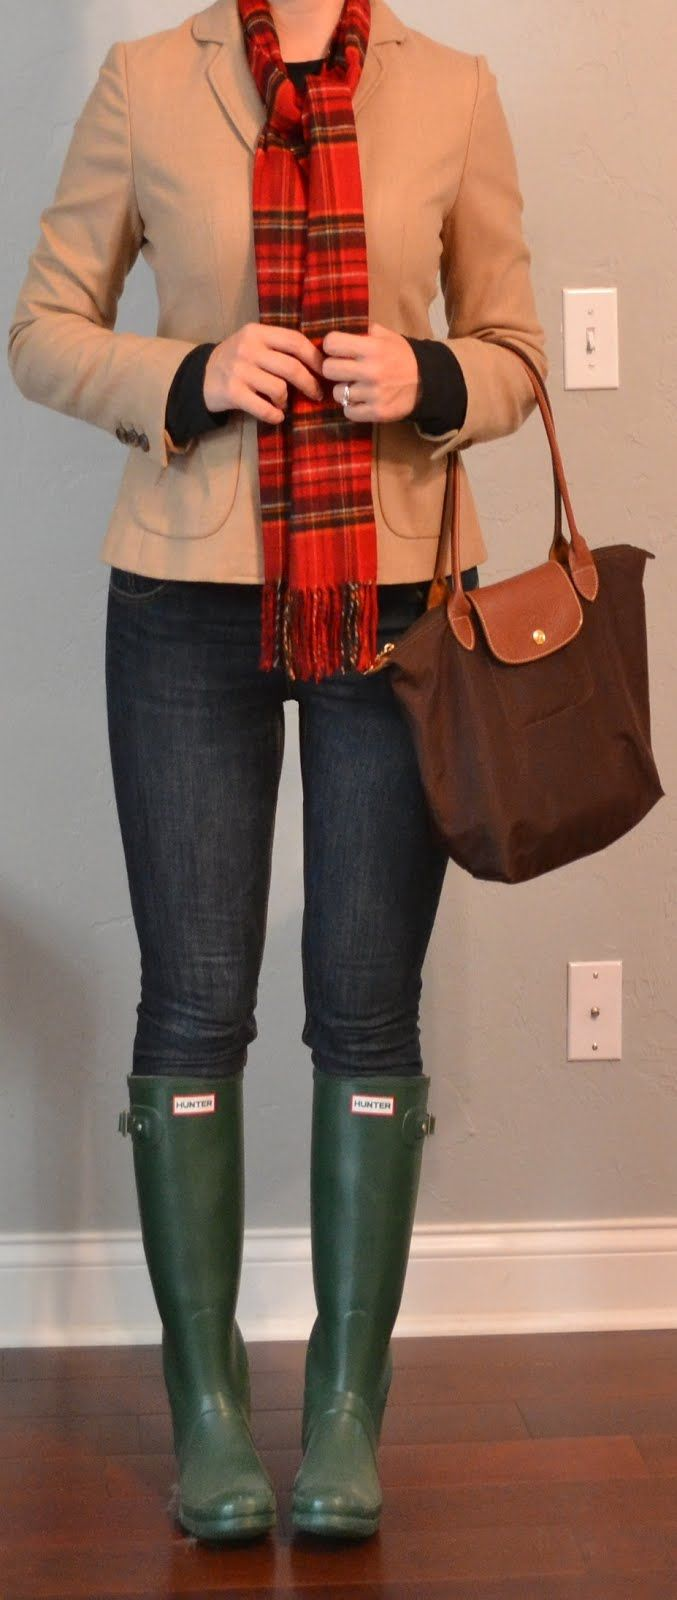 Top:  Camel blazer - Calvin Klein via TJ Maxx  love,  Black thermal shirt - Some camping store  Bottom:  Skinny jeans - Target  Shoes:  Green Wellington rain boots - Hunter  Accessories:  Brown shoulder tote - Longchamp  Red plaid scarf - Target